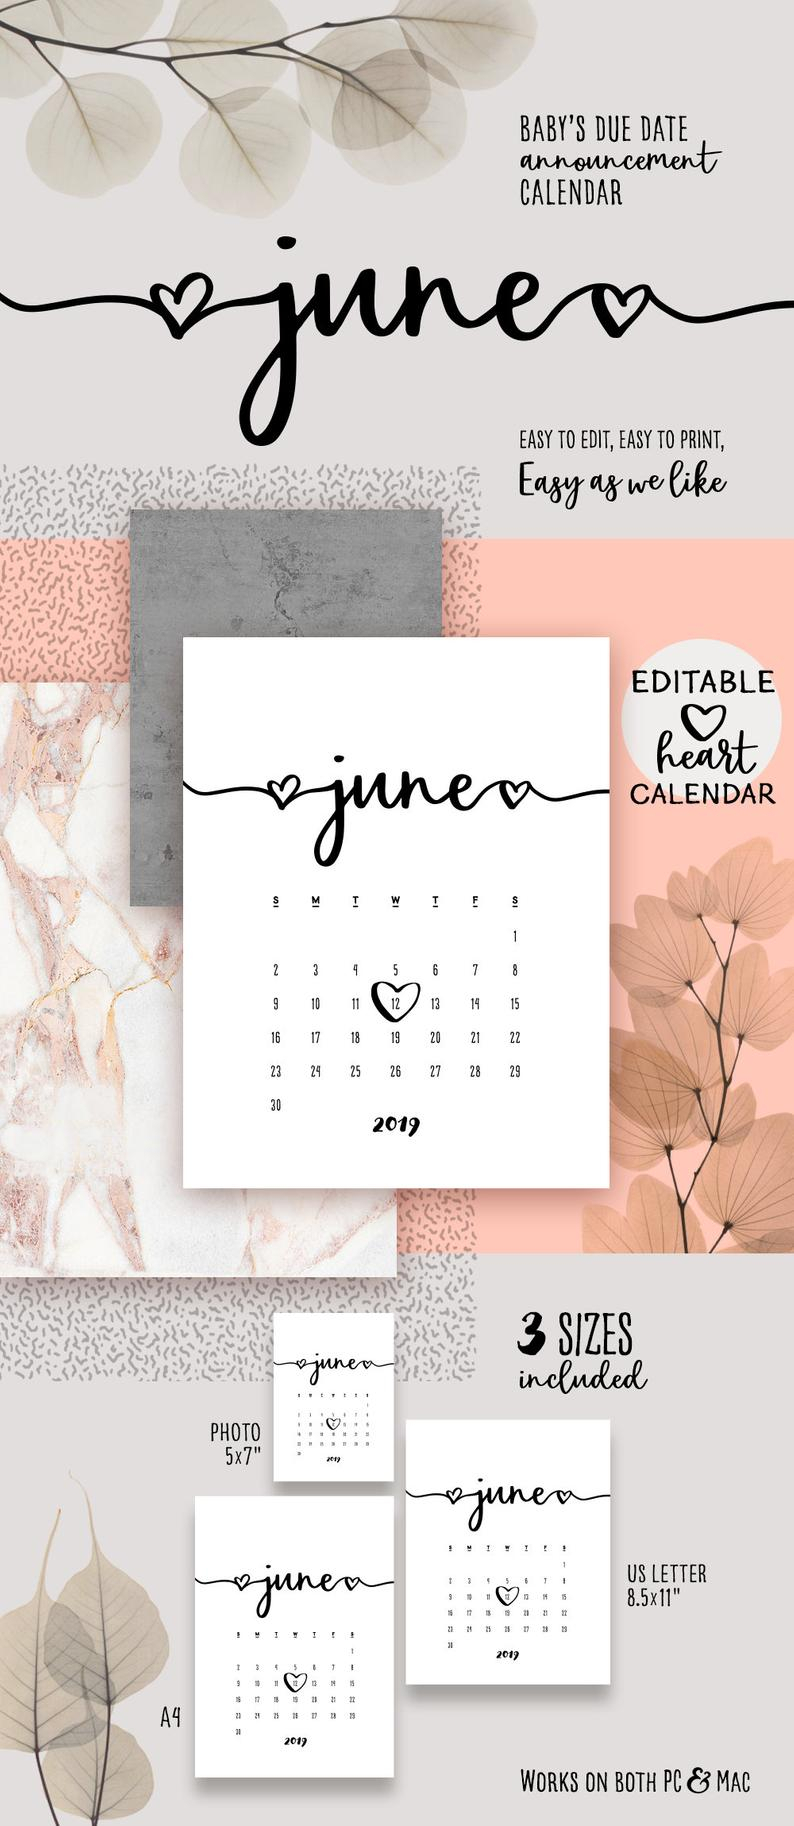 June 2019 Printable Pregnancy Calendar Template Lovely Baby Due Date  Announcement Pregnancy Calendar Pdf Baby Announce Diy Editable Calendar pertaining to Printable Pregnancy Calendar